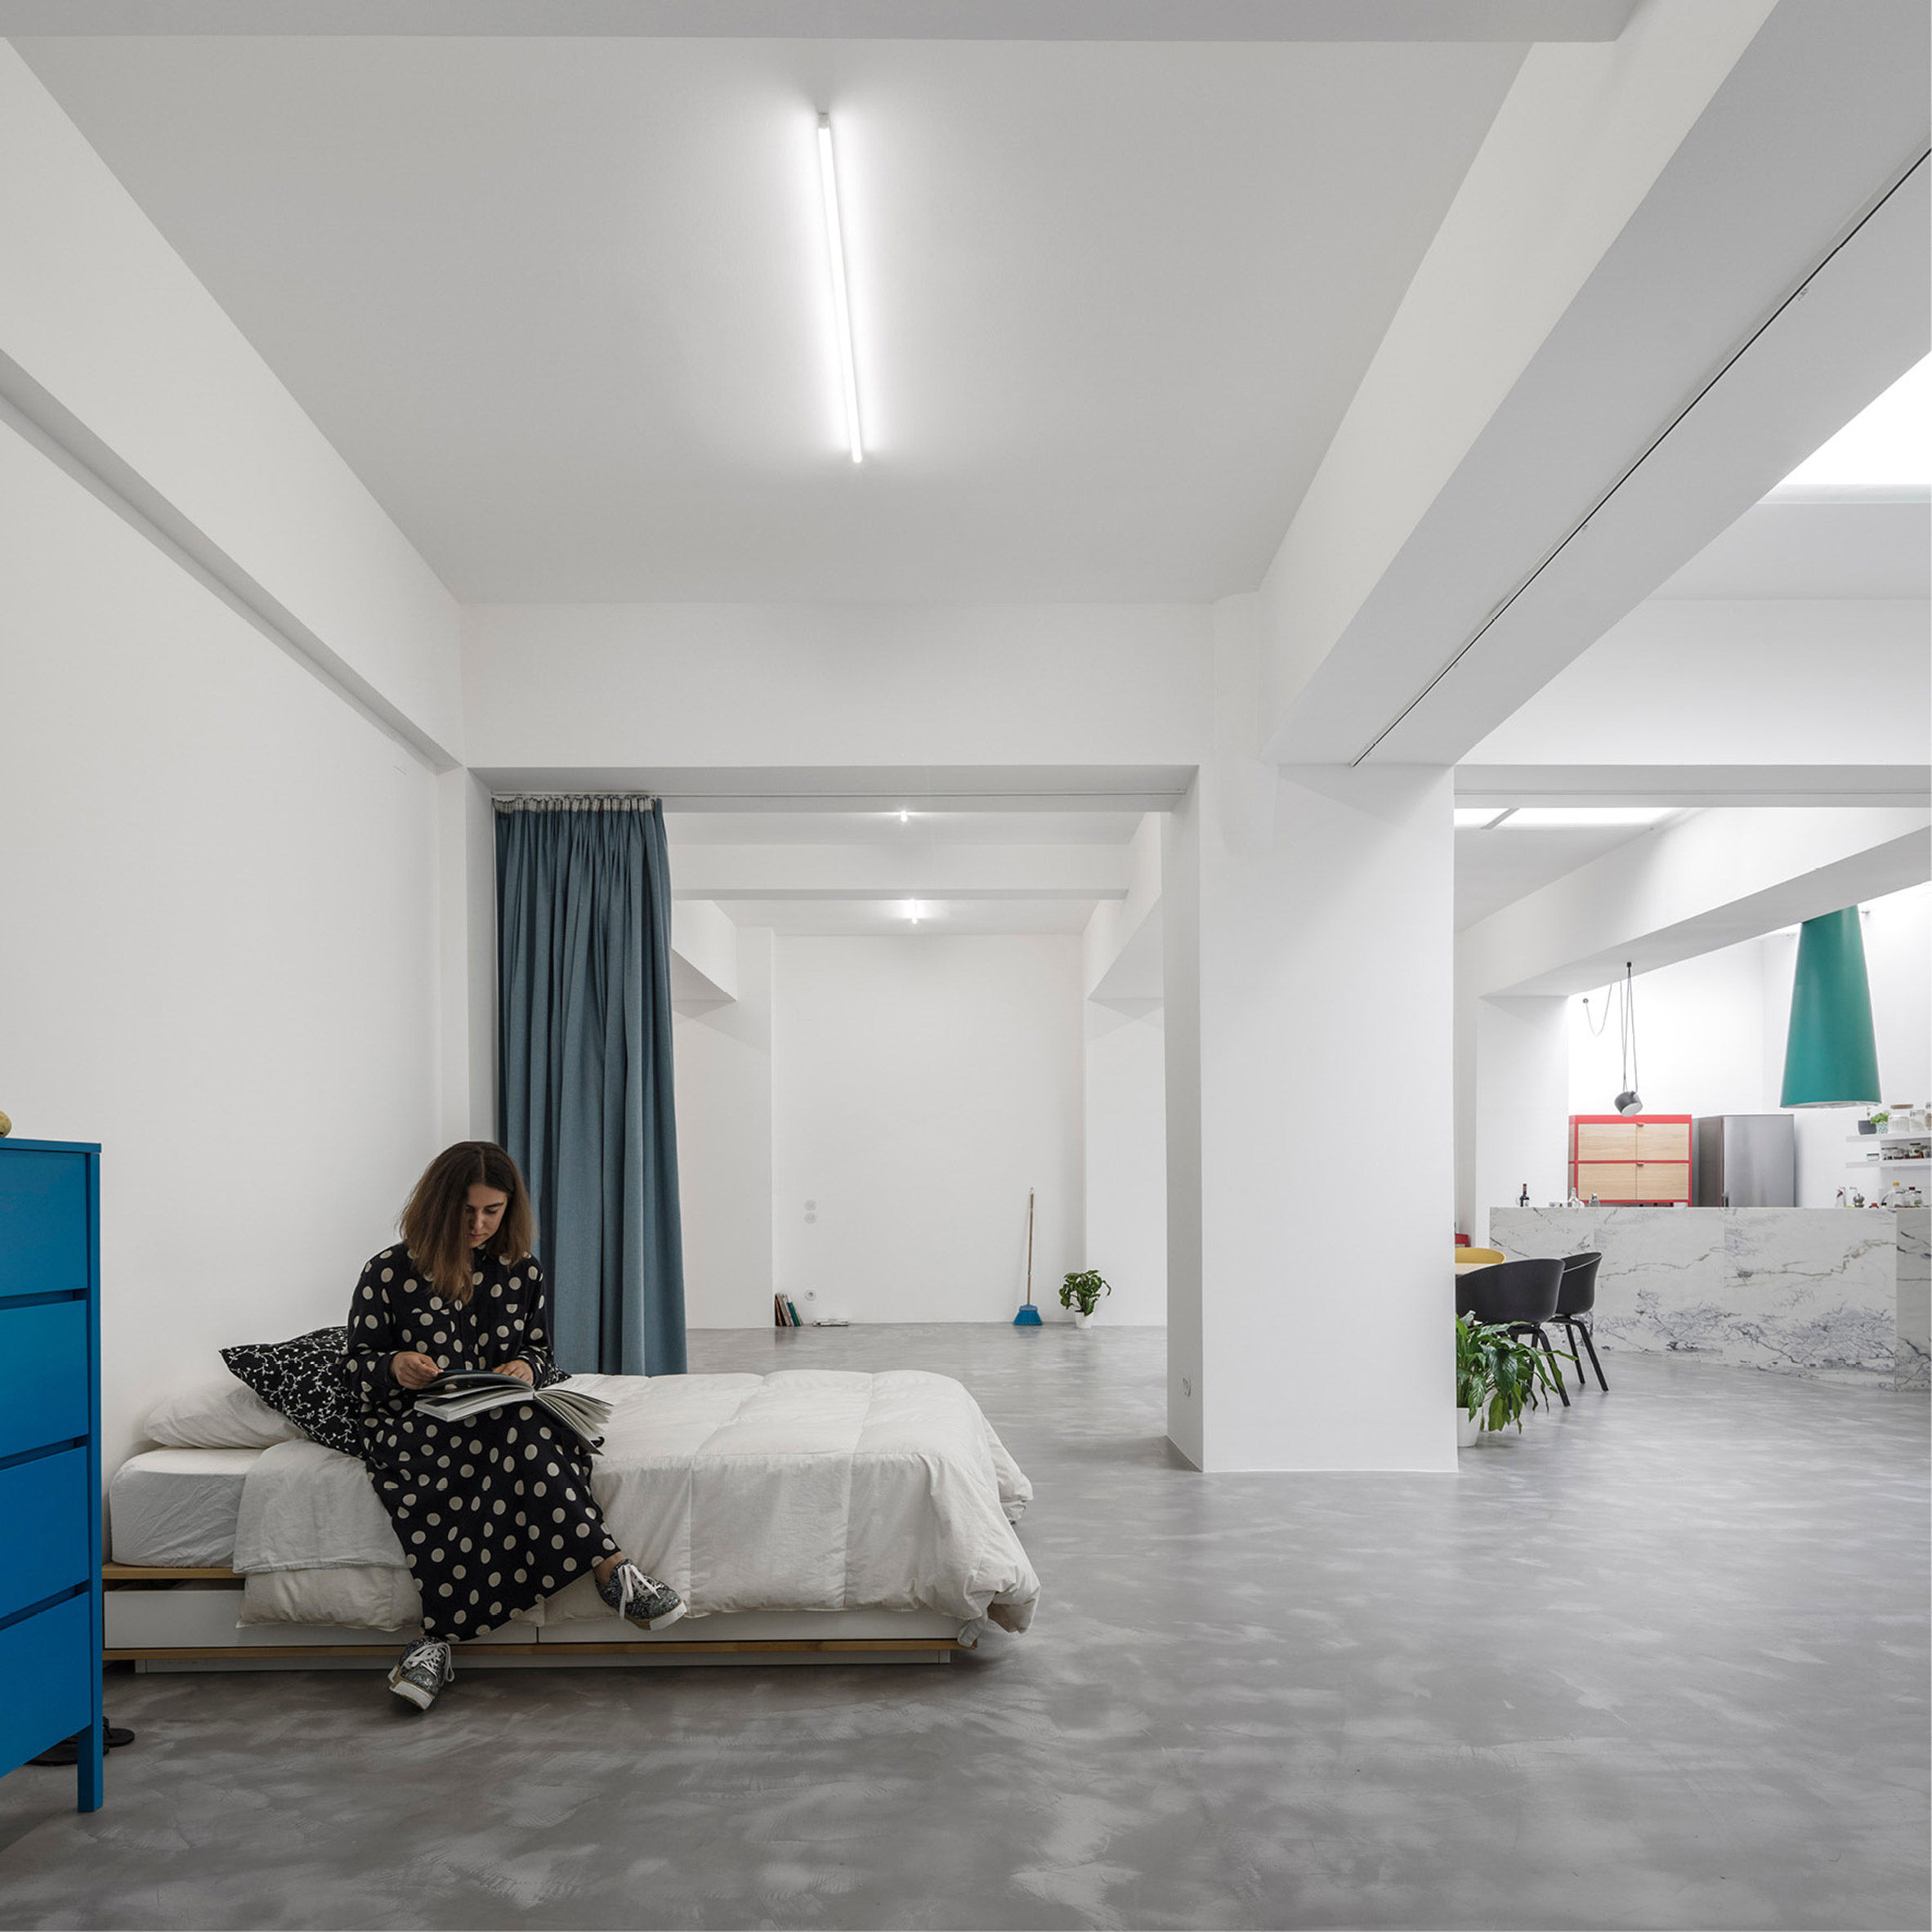 design news Design News: Studio Fala Atelier Transforms Garage into Stunning Home Design News Portuguese Studio Fala Atelier Transforms Garage into Stunning Home 6